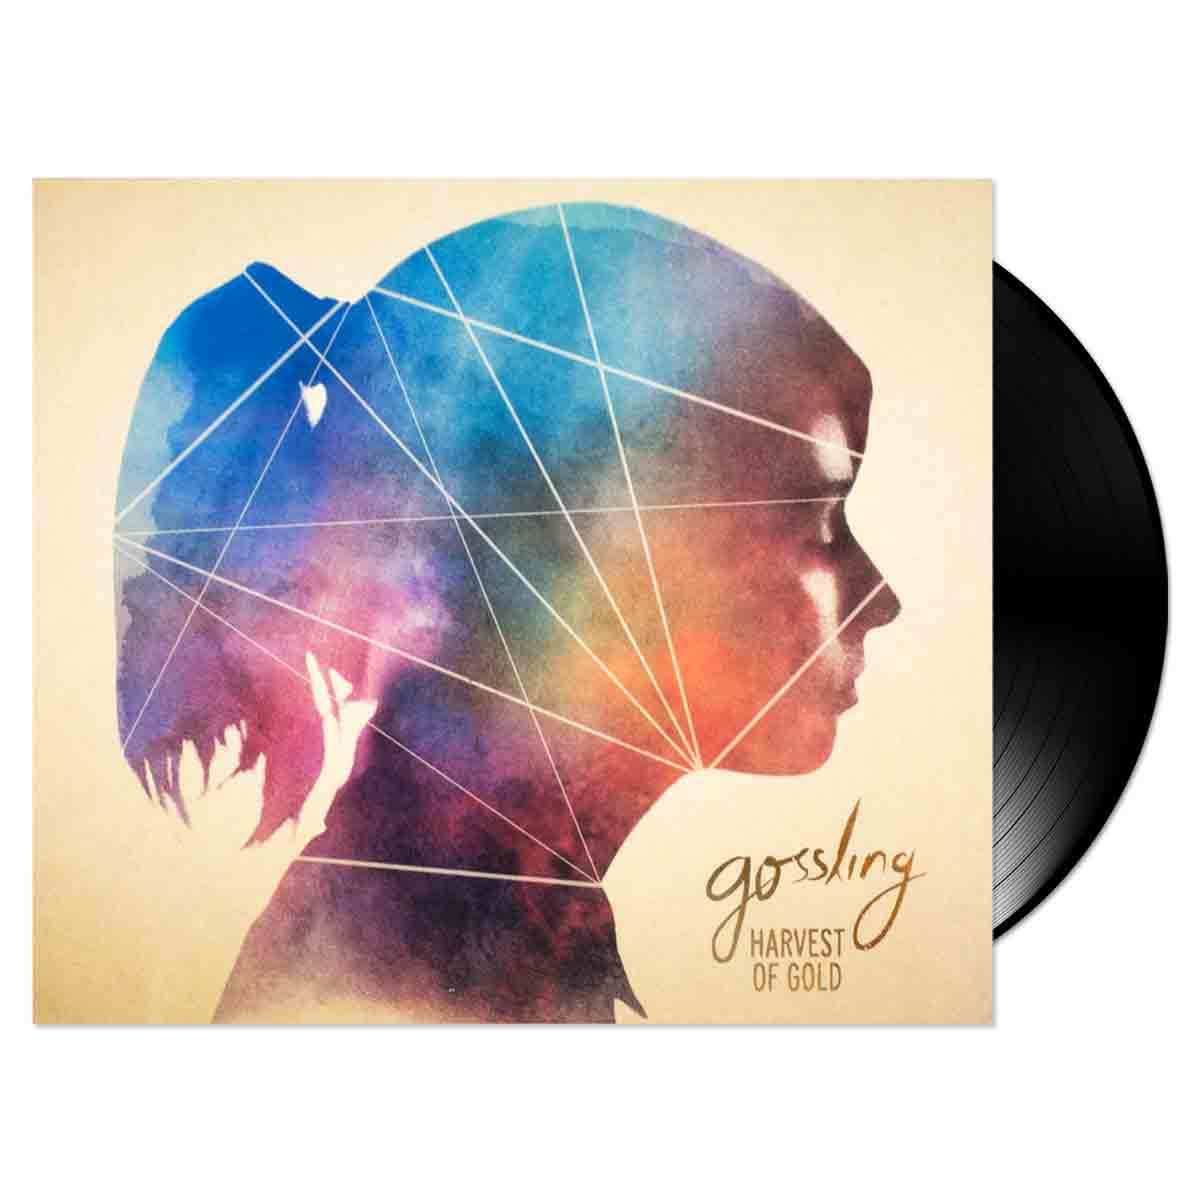 Gossling - Harvest of Gold LP